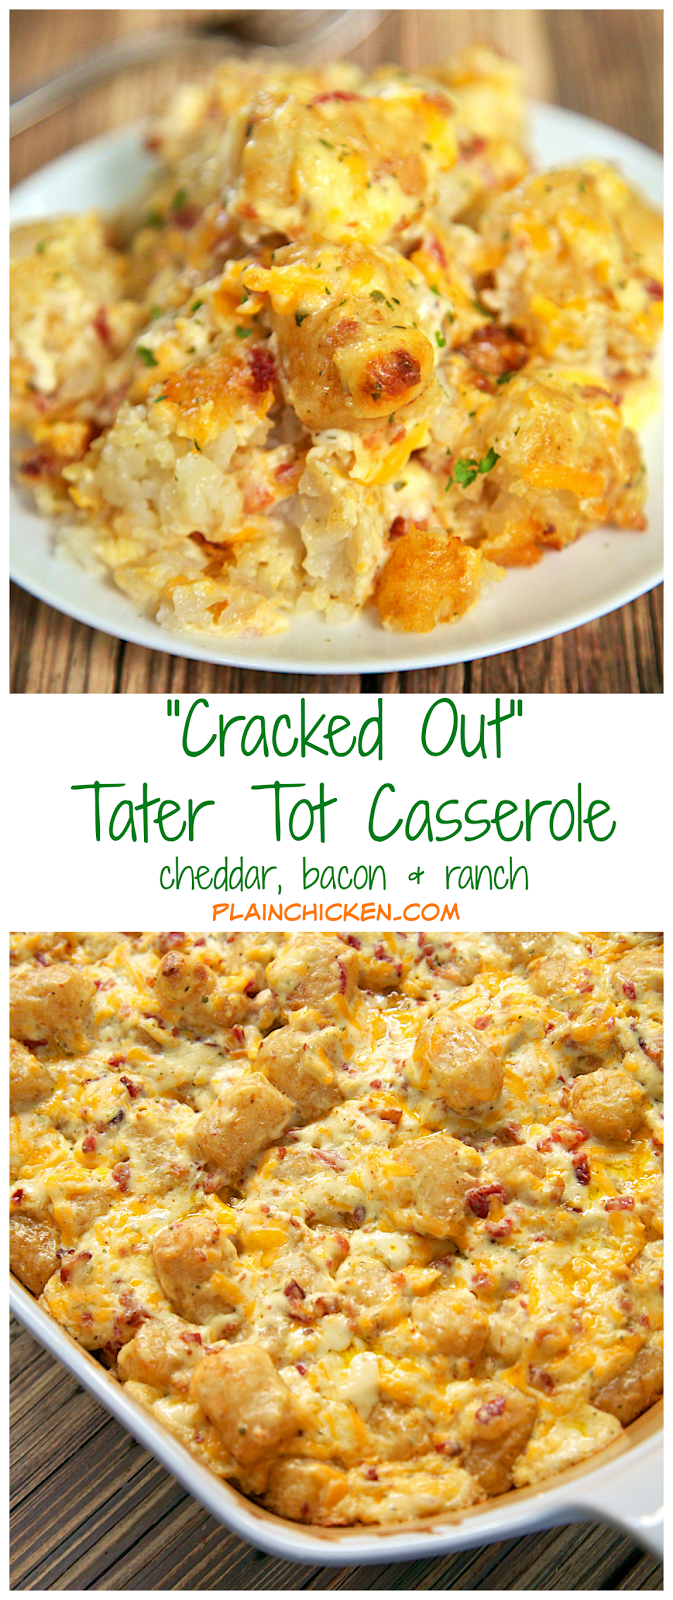 , Bacon and Ranch potato casserole using frozen tater tots. So simple ...